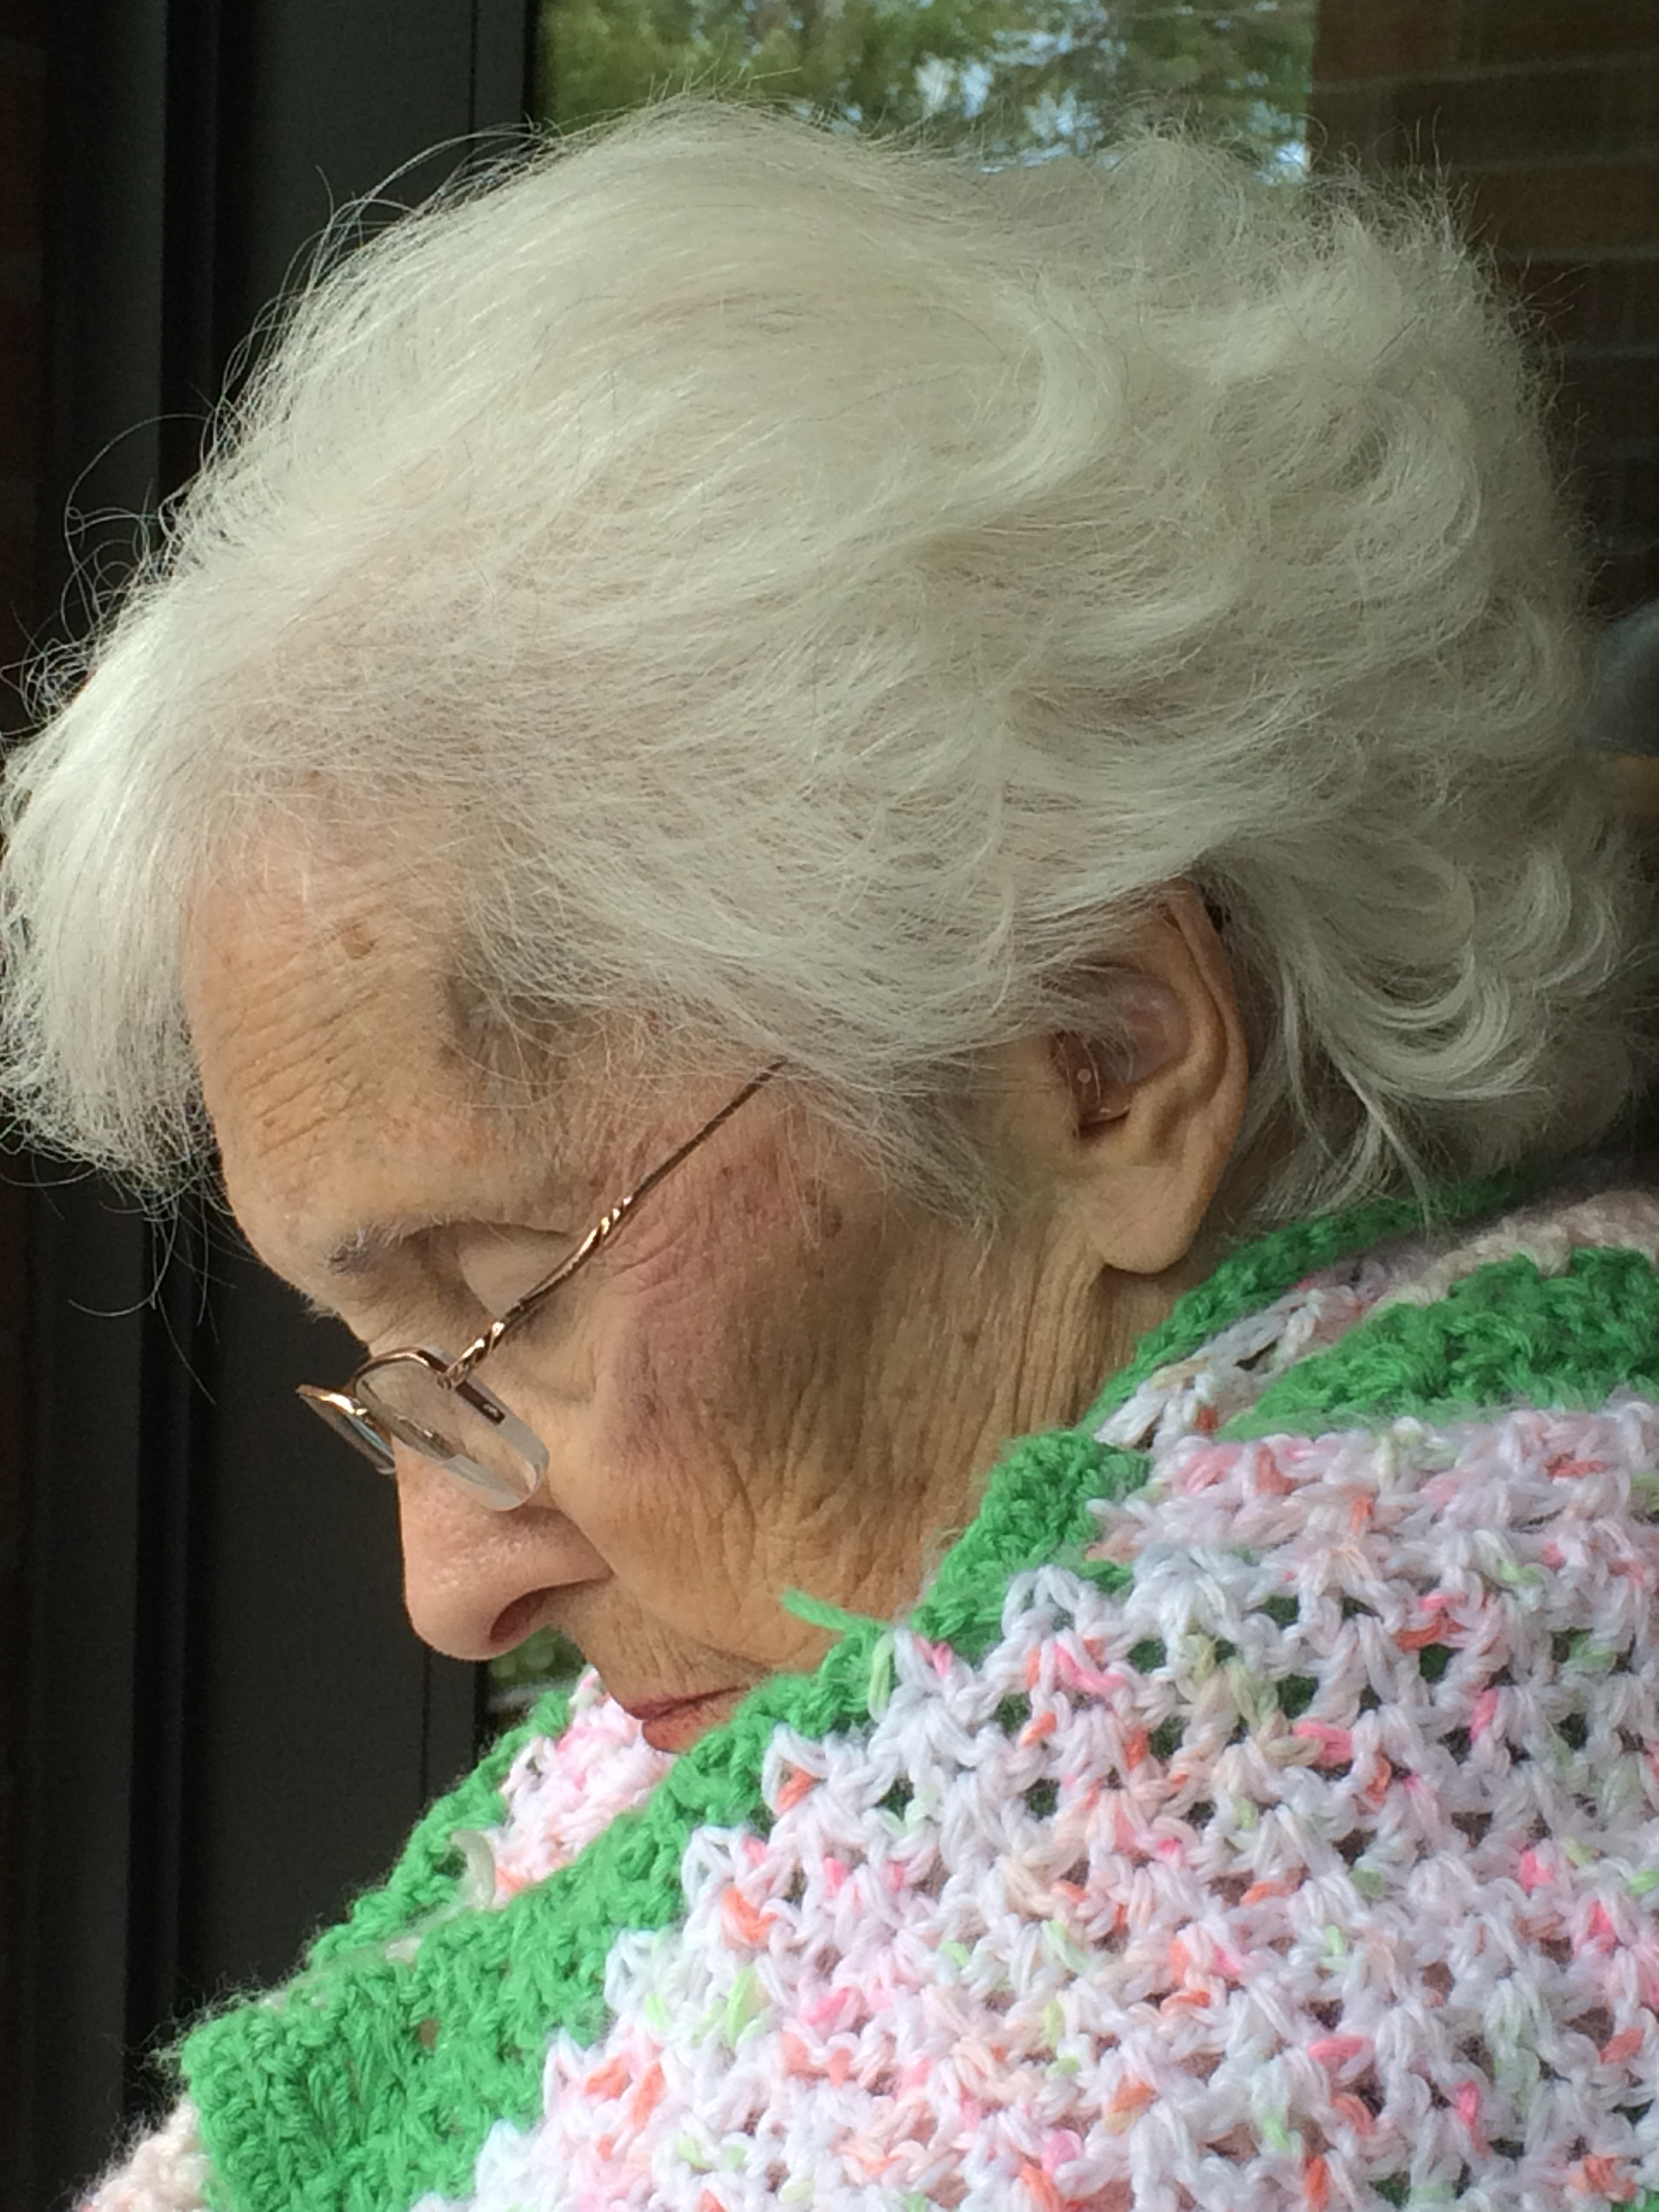 """Catching Tears"" - Today her tears ascended like the frozen snowflakes from the gray December sky. Emotions erupt with the Alzheimer's Disease journey… Read more"